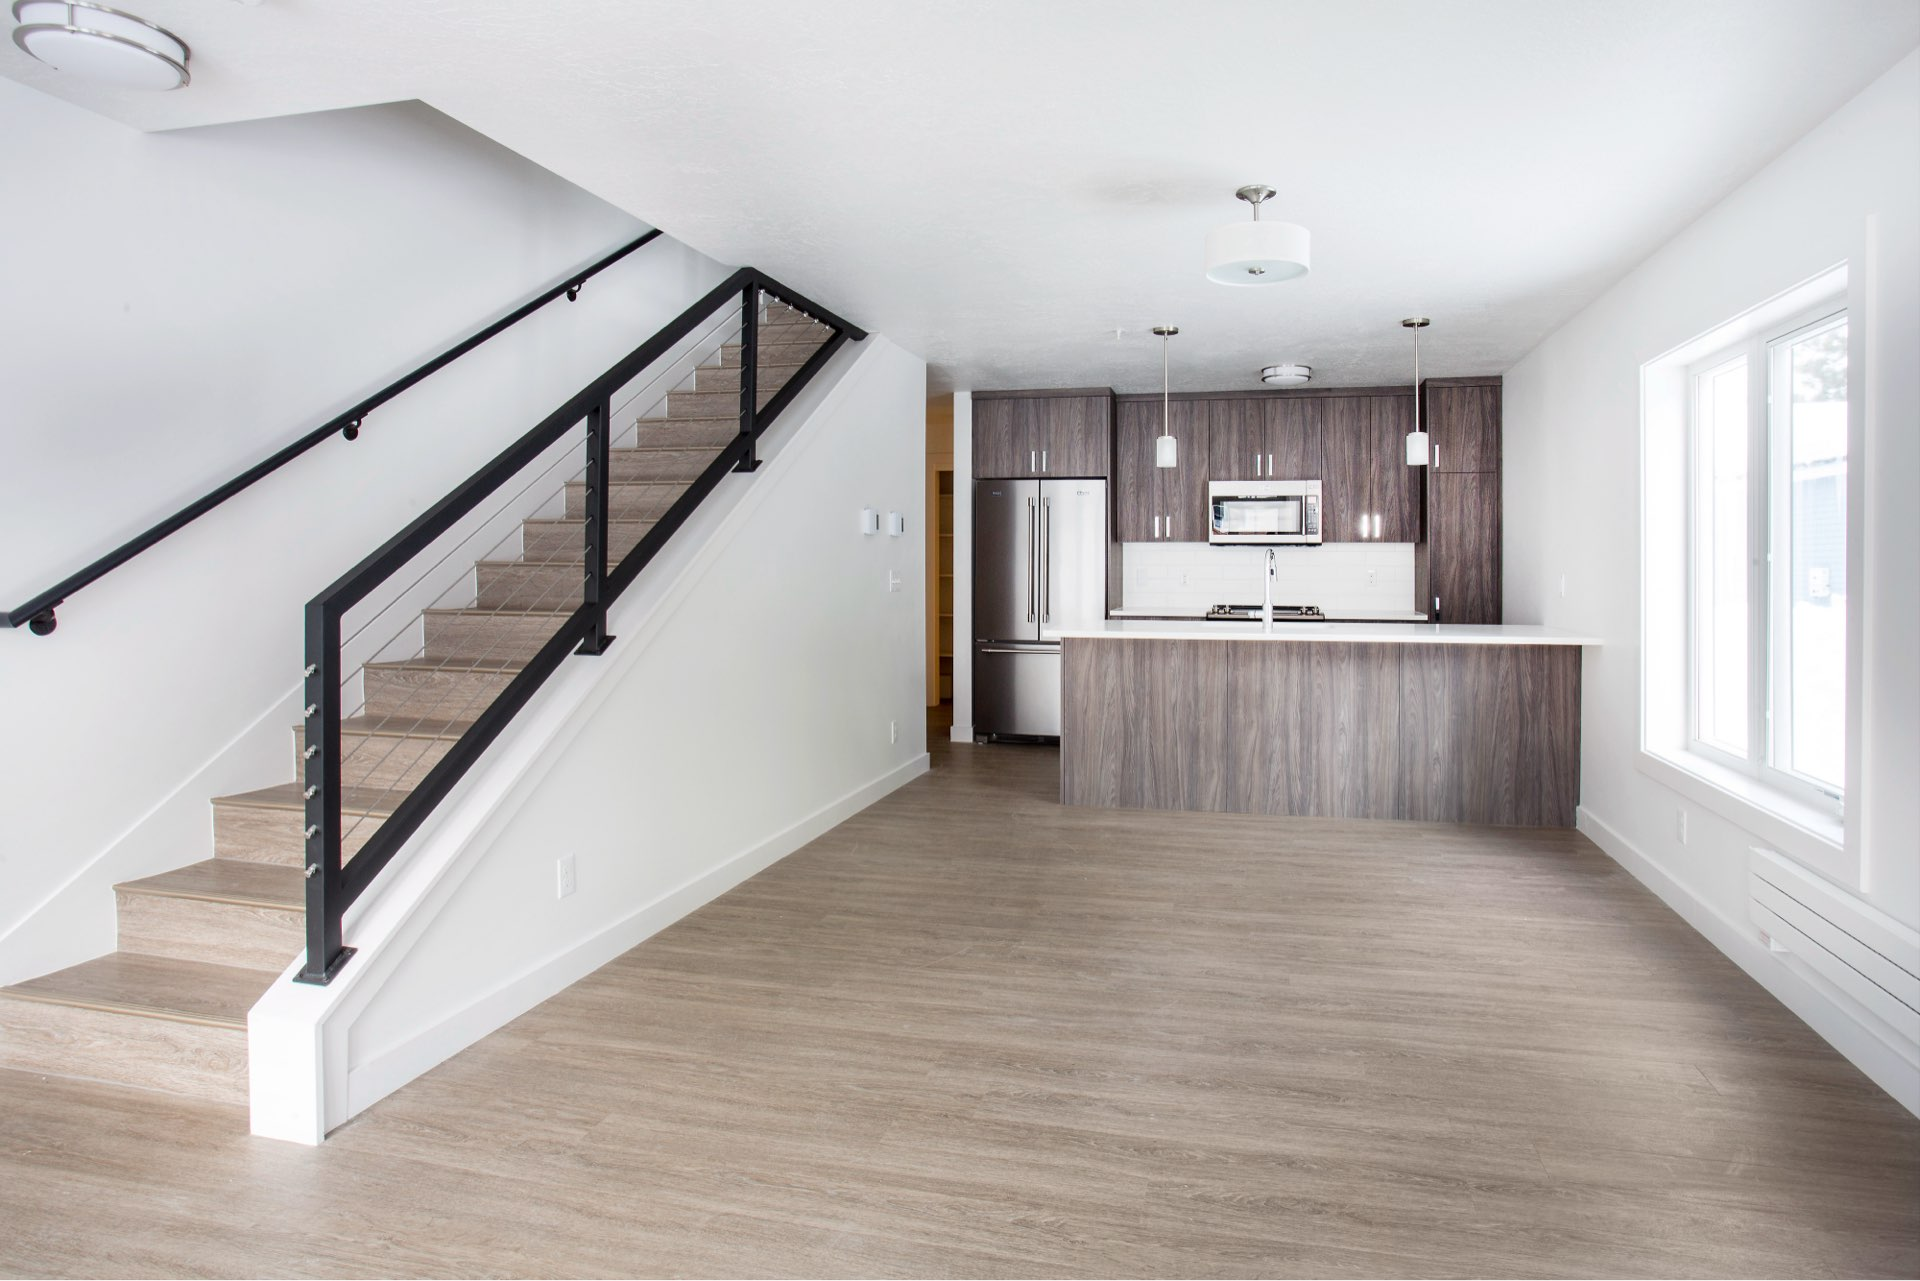 Kitchen and stairs, Woodside Park Affordable Housing, architectural design by Elliott Workgroup